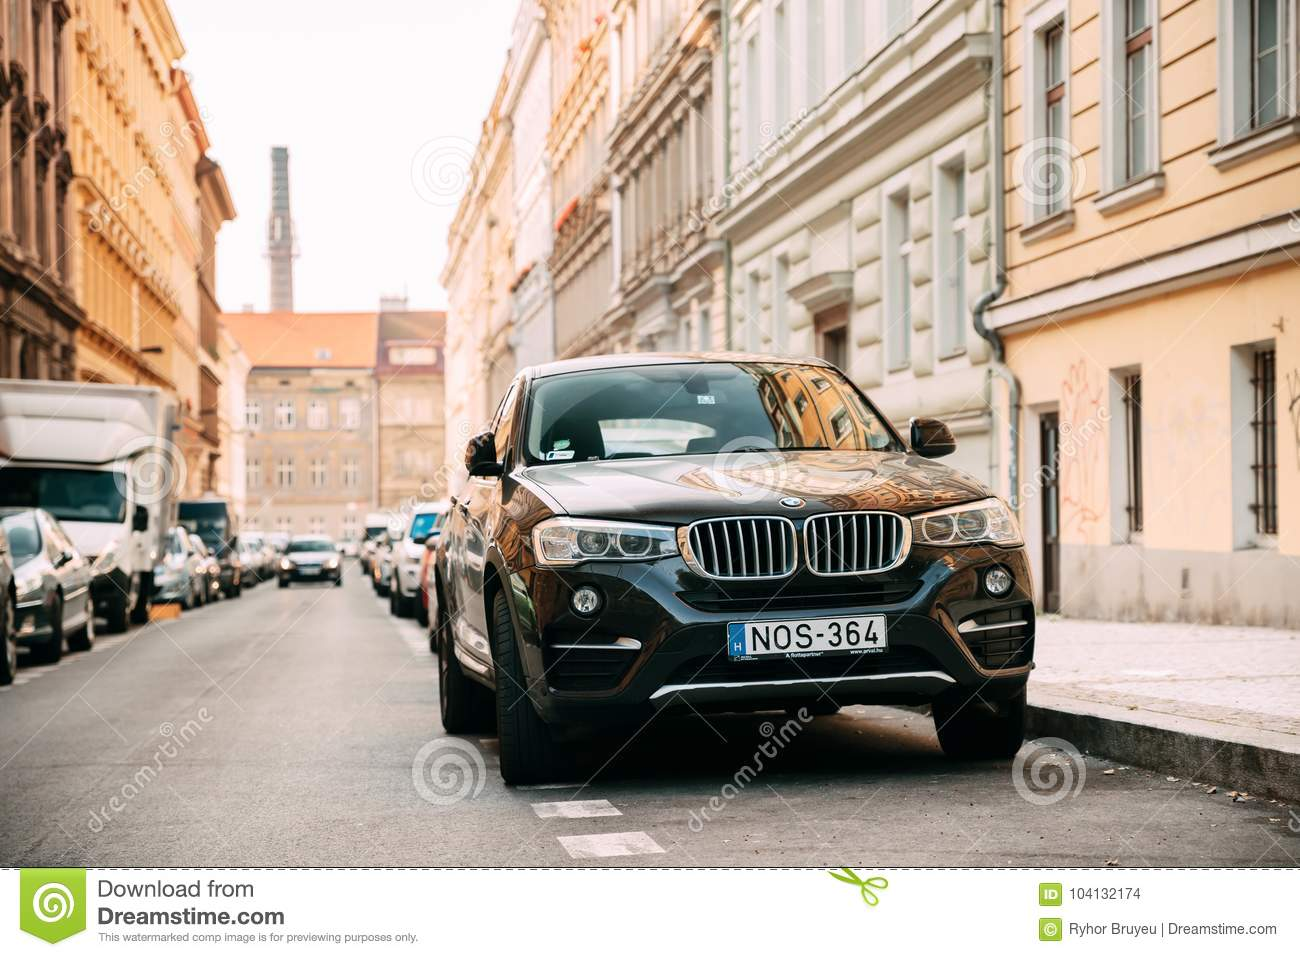 Front View Of Black Bmw X6 F16 Car Parked In Street Car Of Second